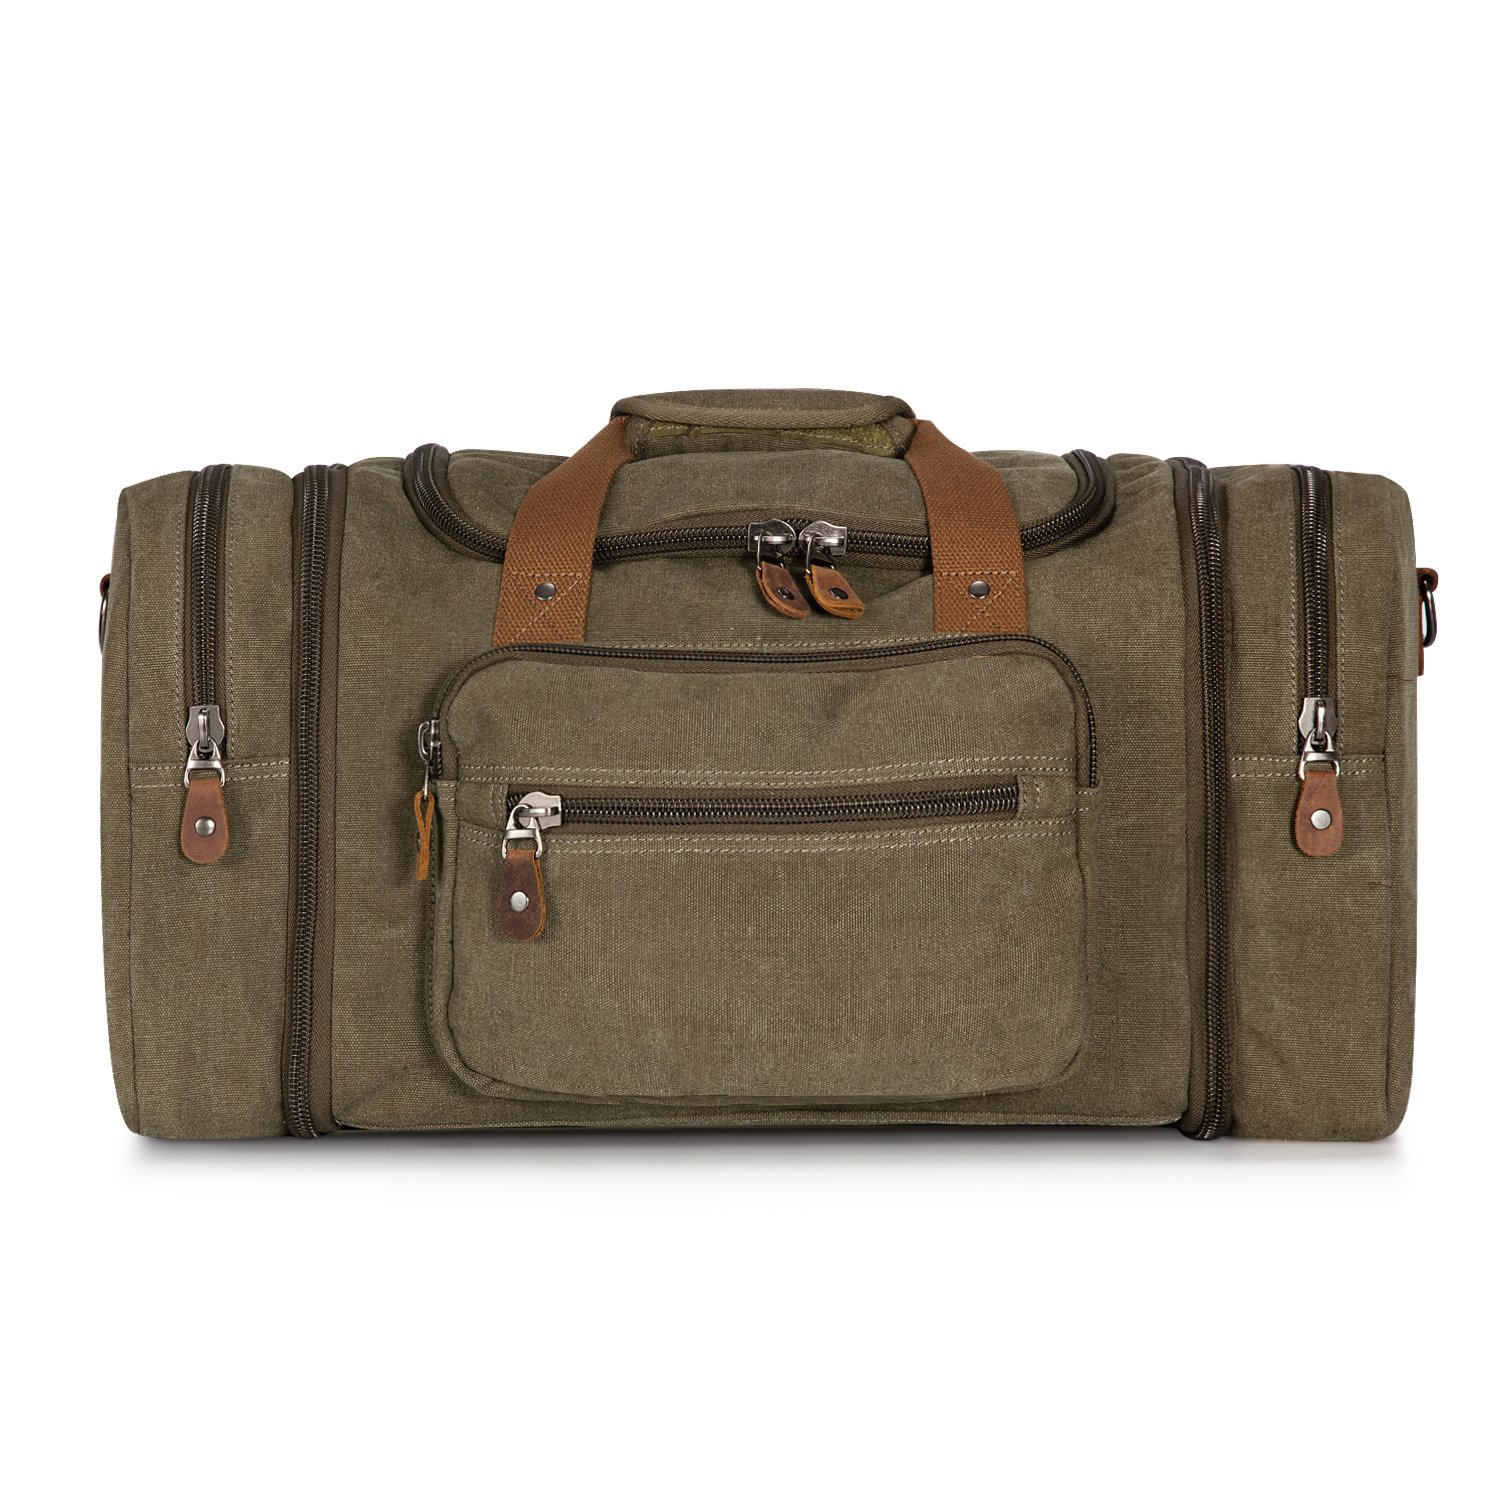 Plambag Oversized Canvas Duffle Bag 50L Tote Travel Weekend Luggage Gym Bag Army Green